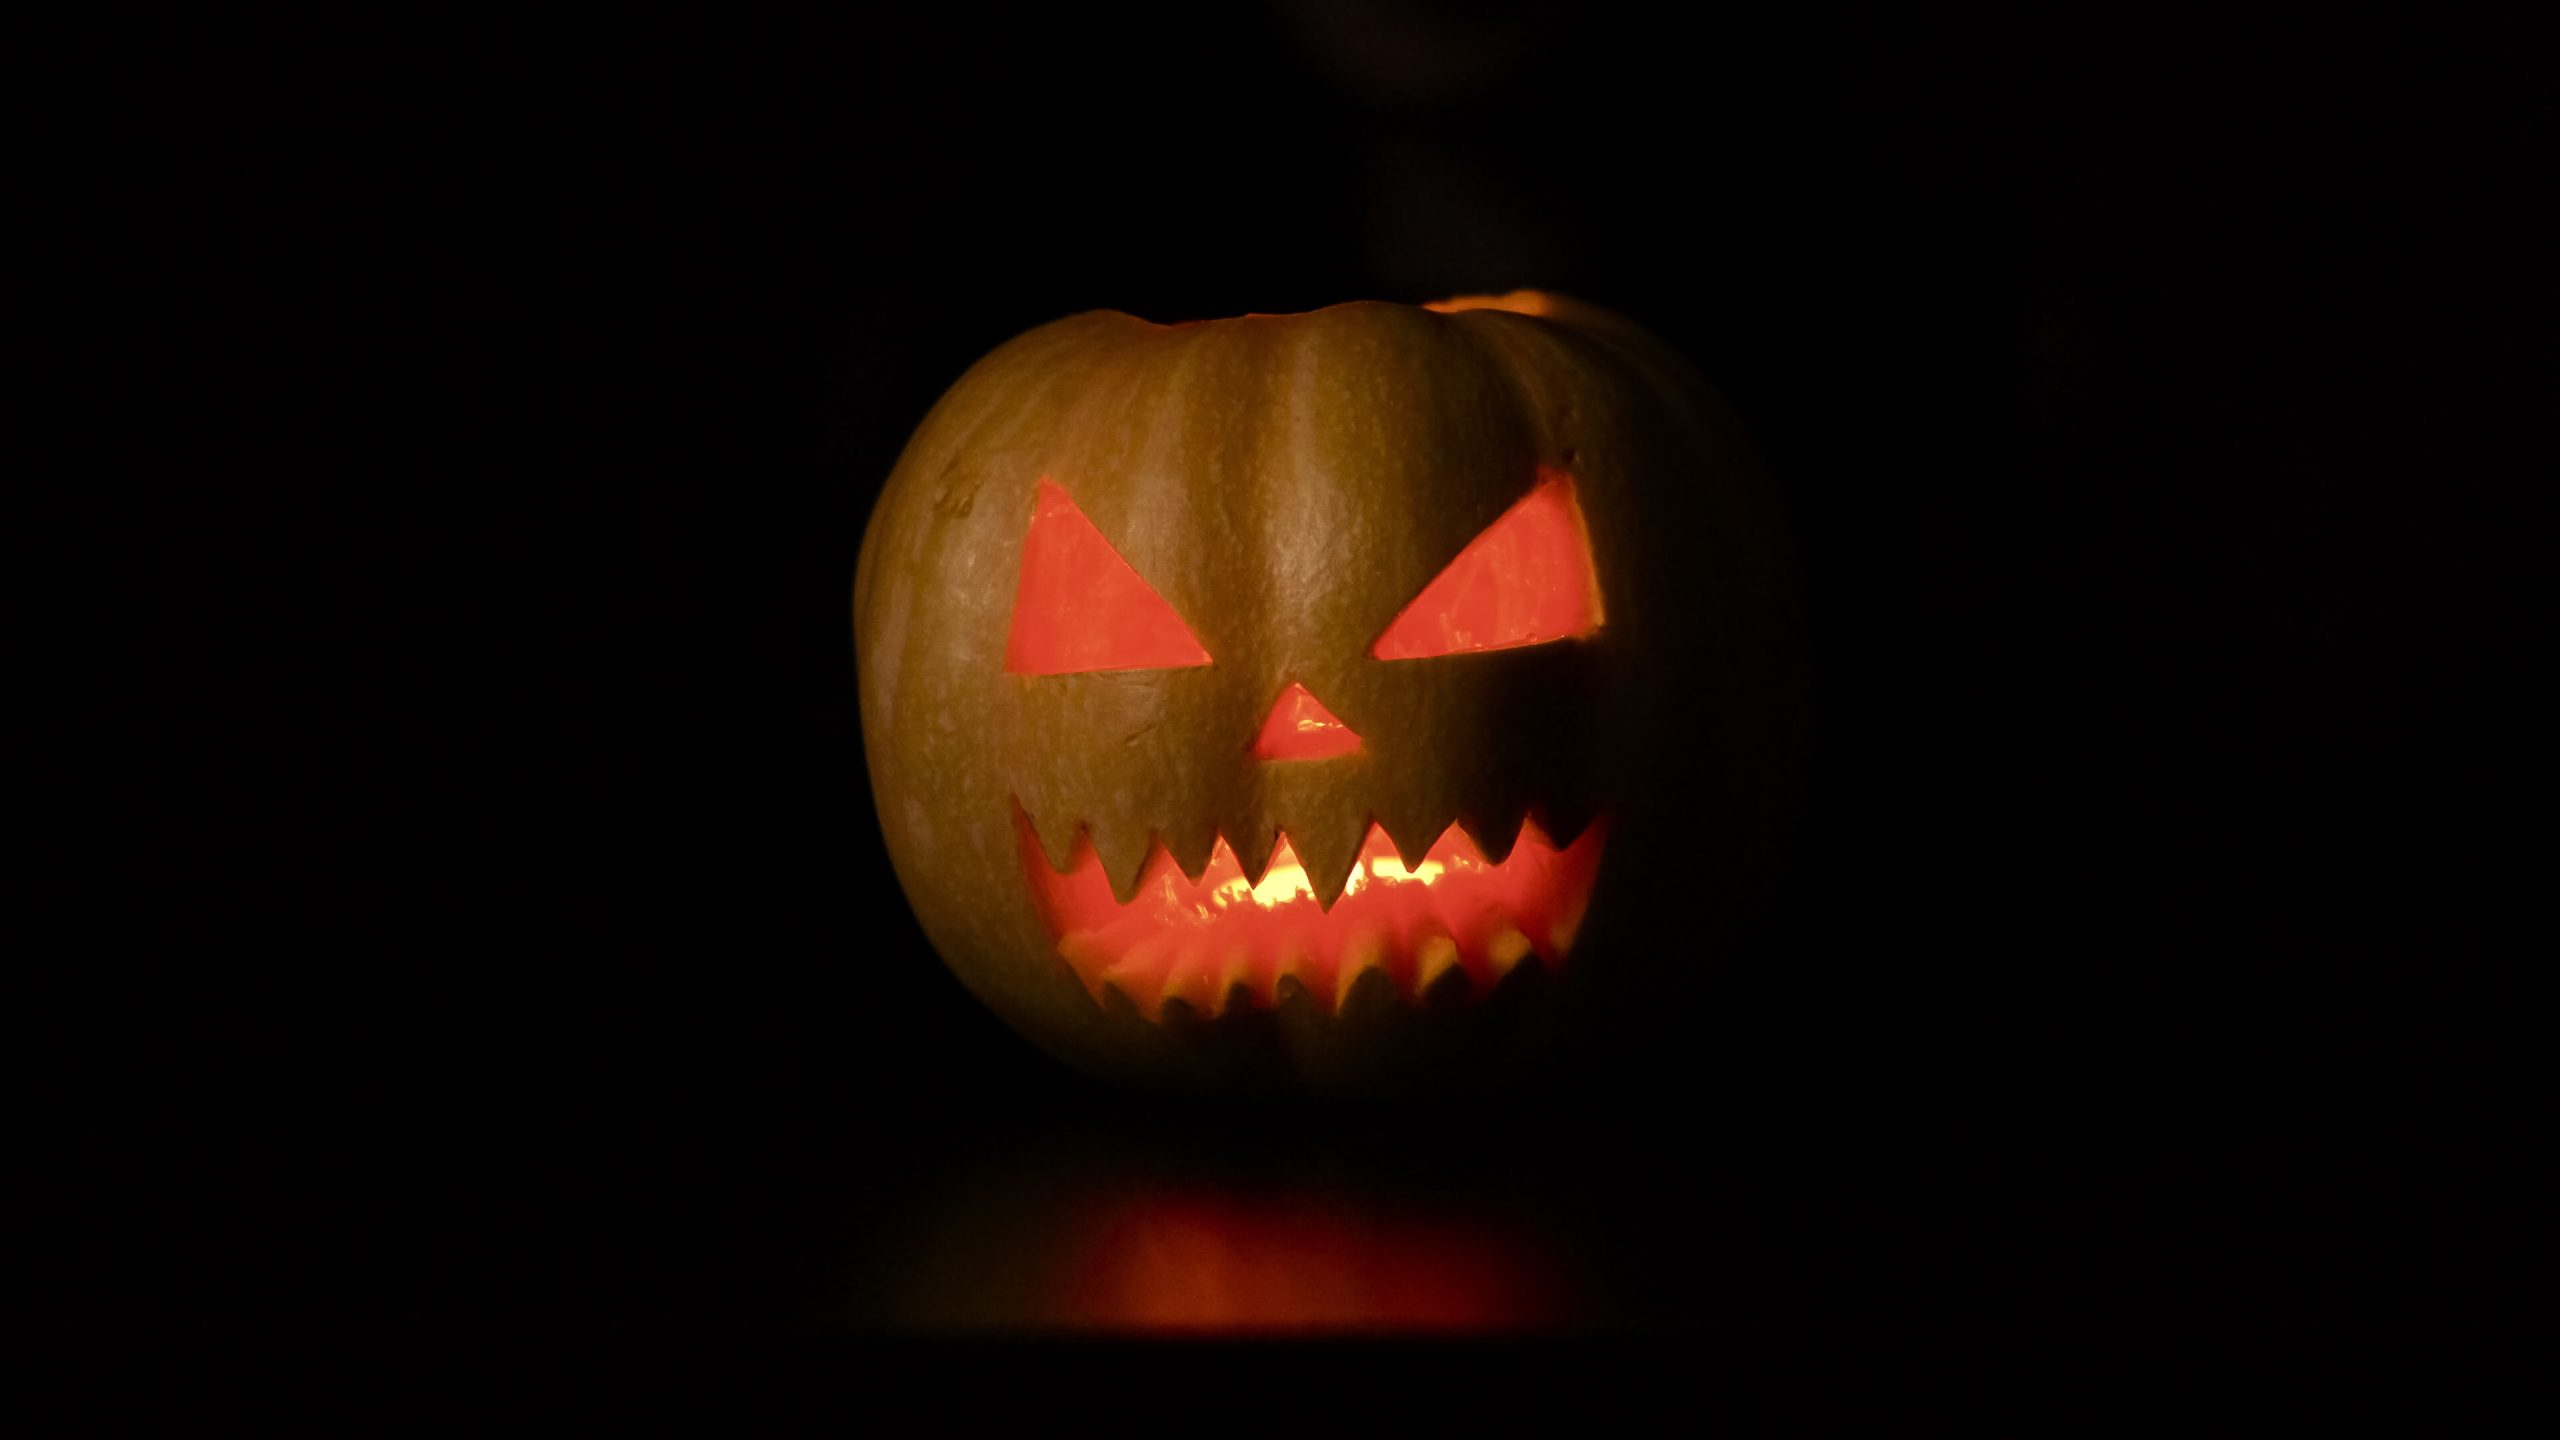 Do we have to toss Halloween out the window this year, too? Public health experts give some guidelines